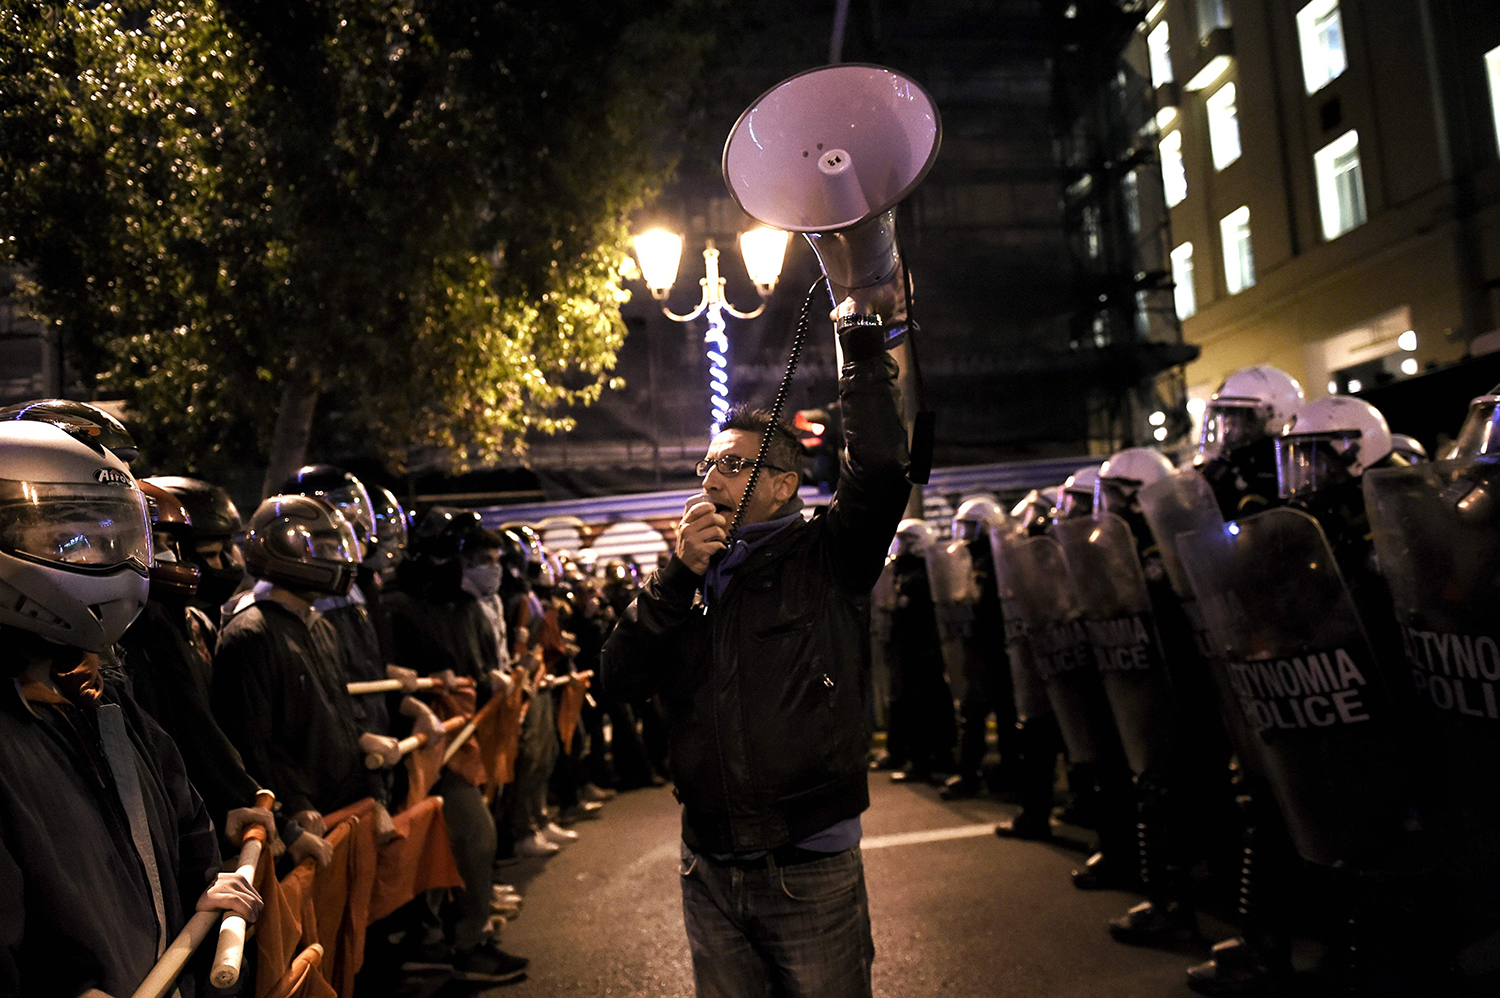 TOPSHOT - A man speaks into a megaphone as demonstrators hold red flags during a protest against the visit of the US president in Athens on November 15, 2016. US President Barack Obama is in Greece on a two-day official visit. / AFP PHOTO / ARIS MESSINIS / TT / kod 444